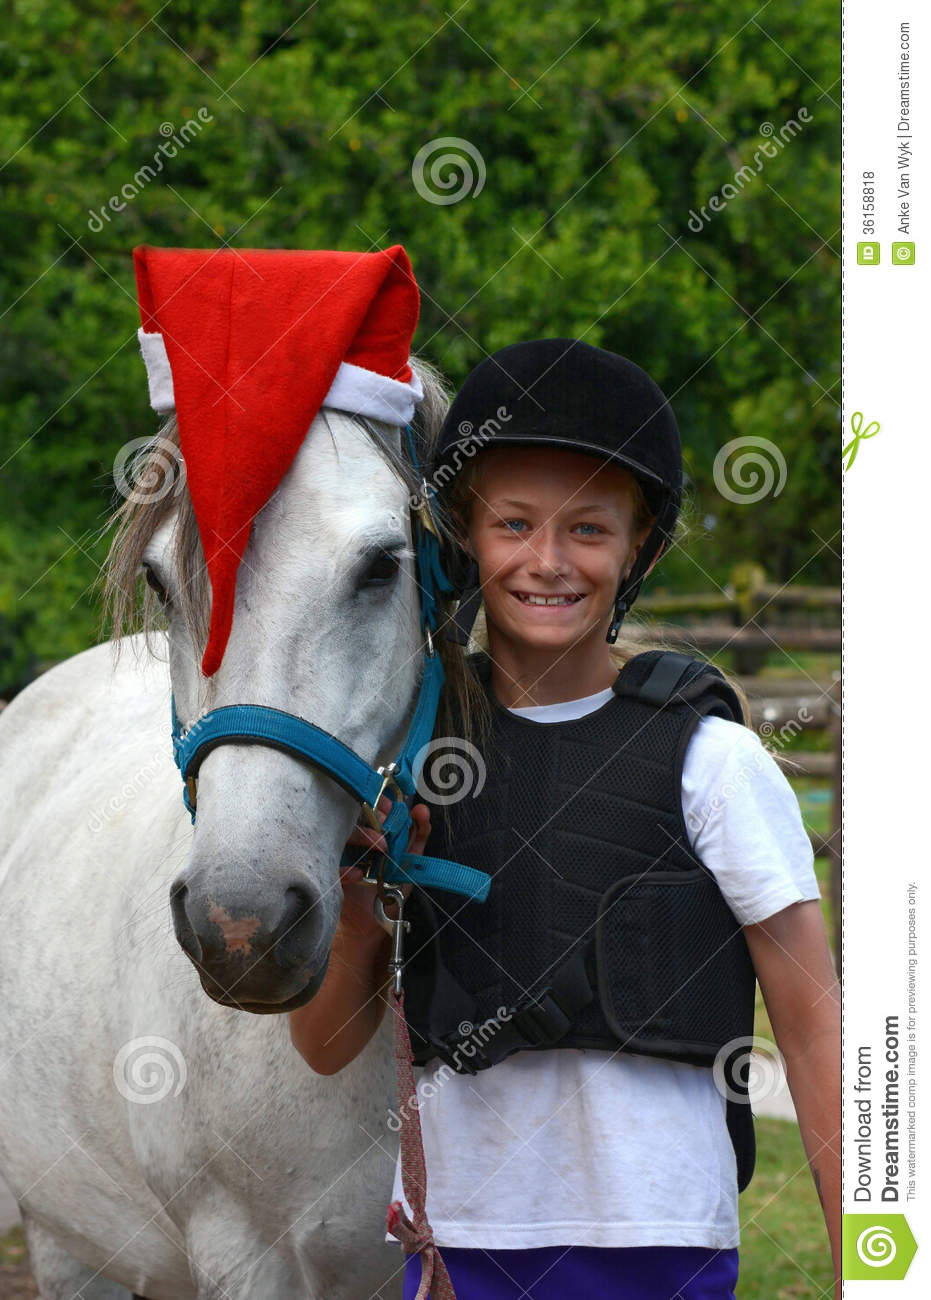 Pictures Horse Funny Smiling